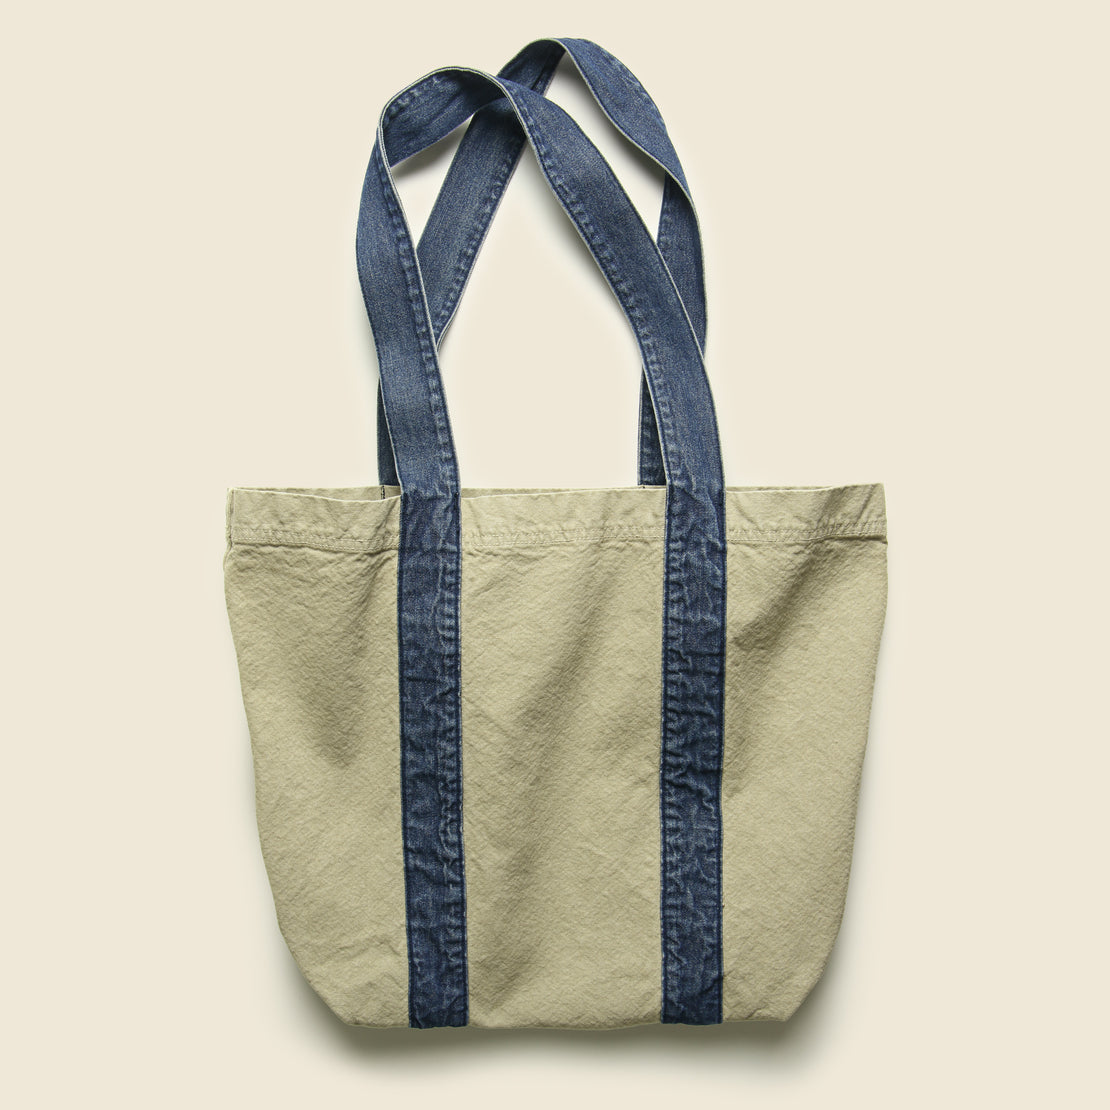 Canvas/Denim Tote Bag - Khaki